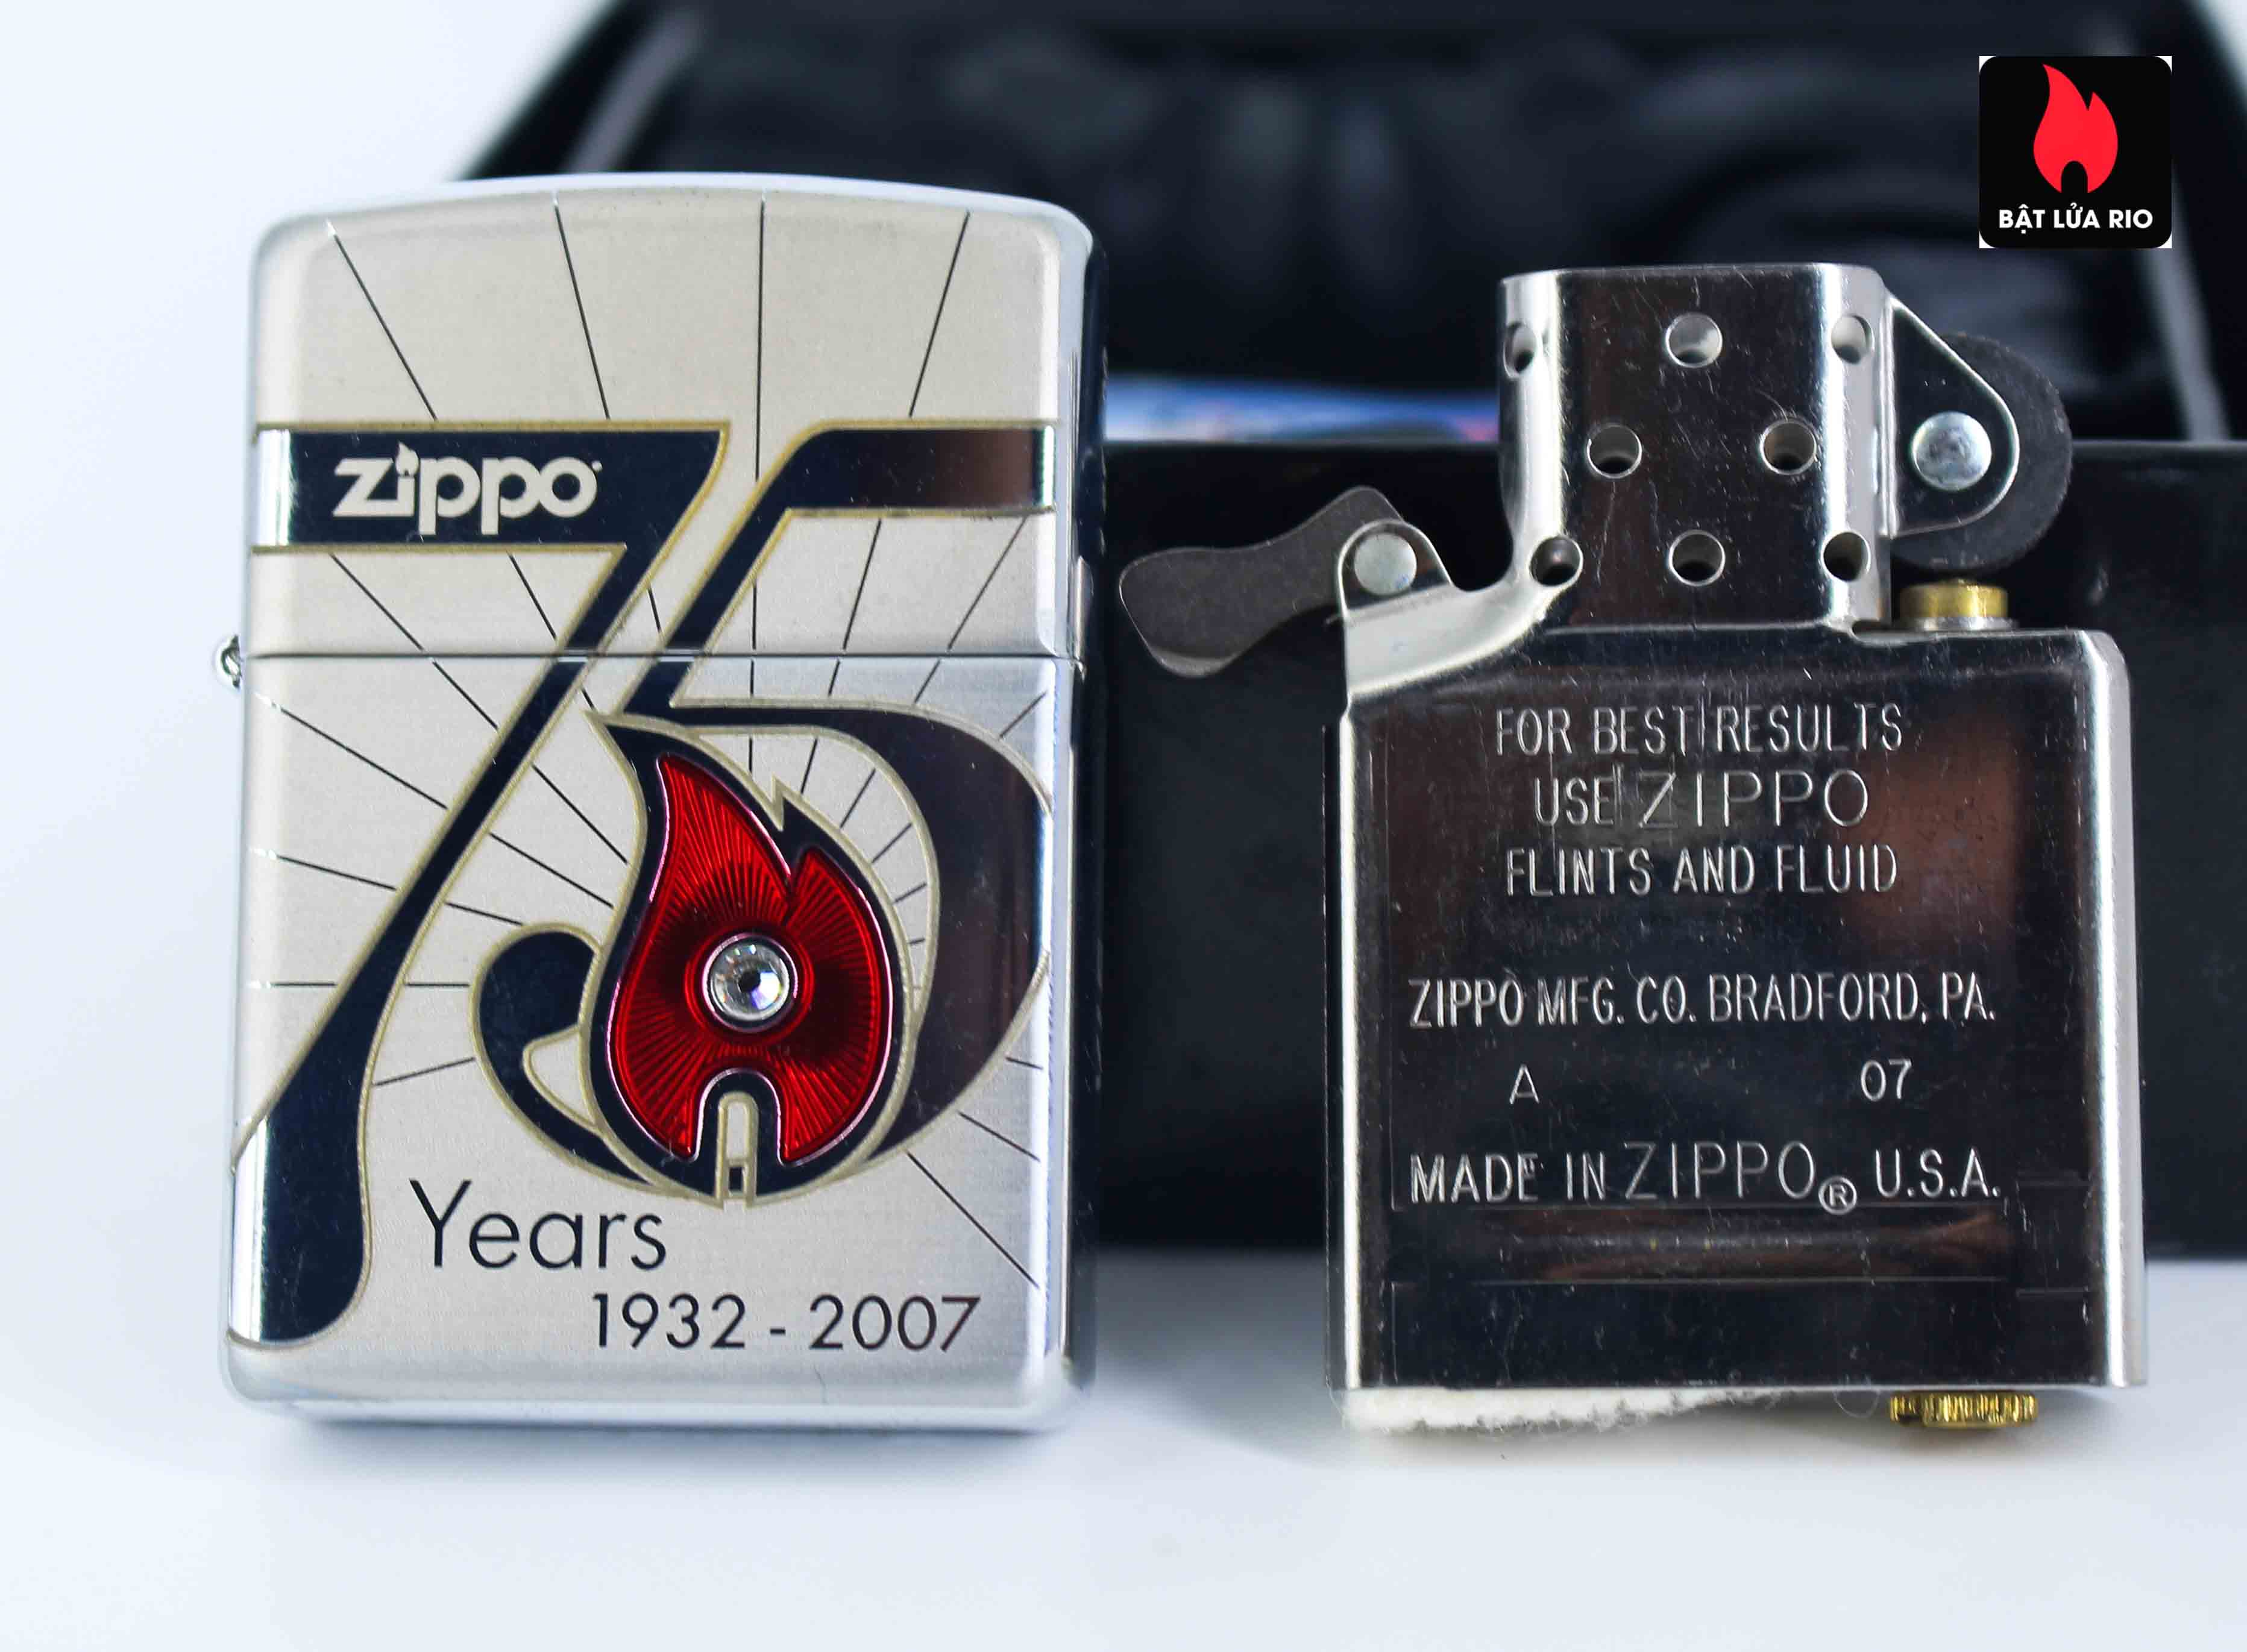 Zippo 2007 - 75th Anniversary Edition - VietNam - Limited VIE 1 Of 500 8